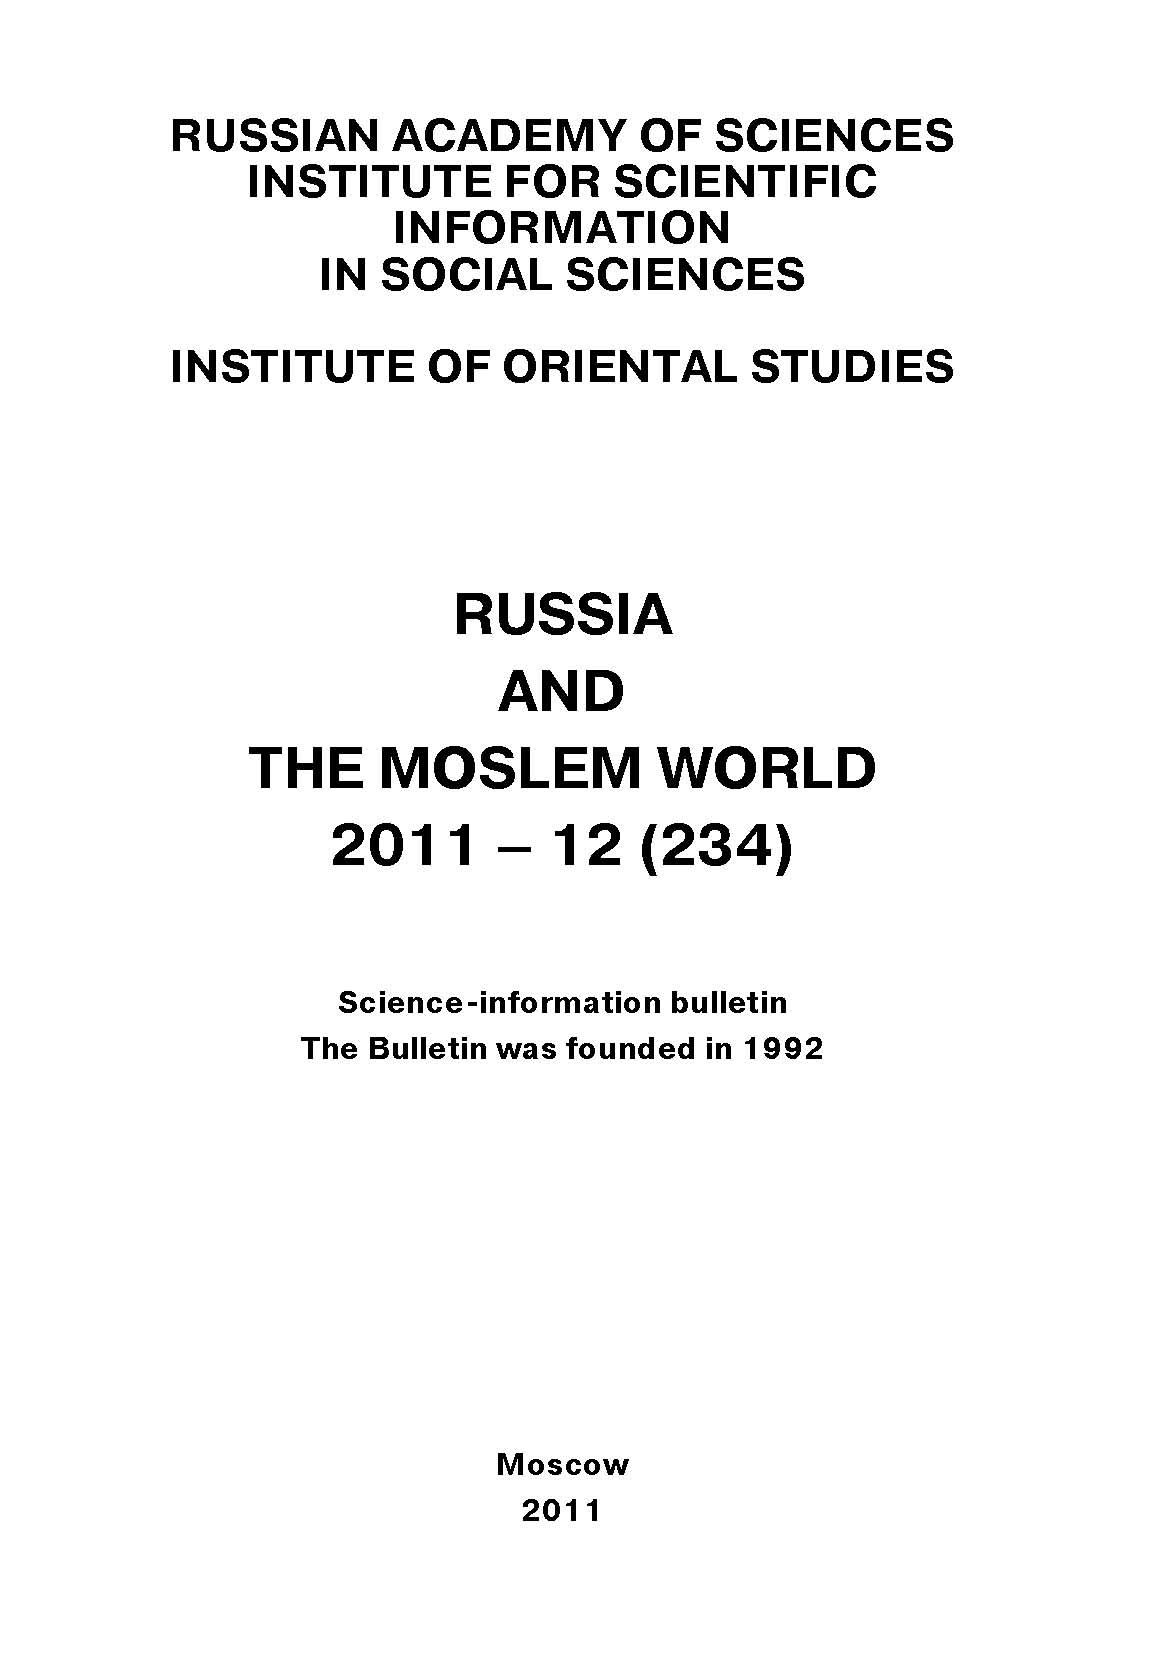 Сборник статей Russia and the Moslem World № 12 / 2011 сборник статей russia and the moslem world 04 2011